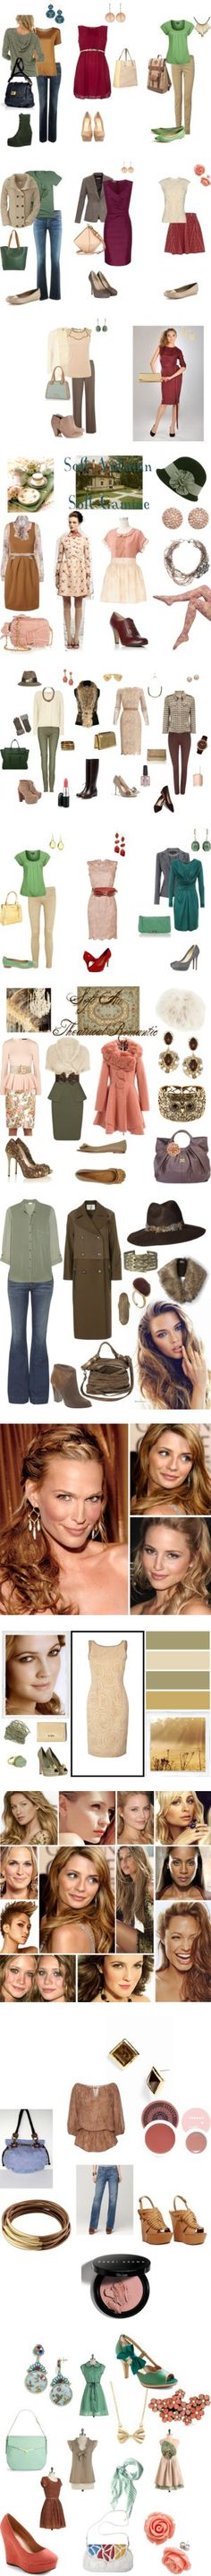 Soft Autumn by authenticbeauty on Polyvore featuring Alexandre Birman, Maloa…